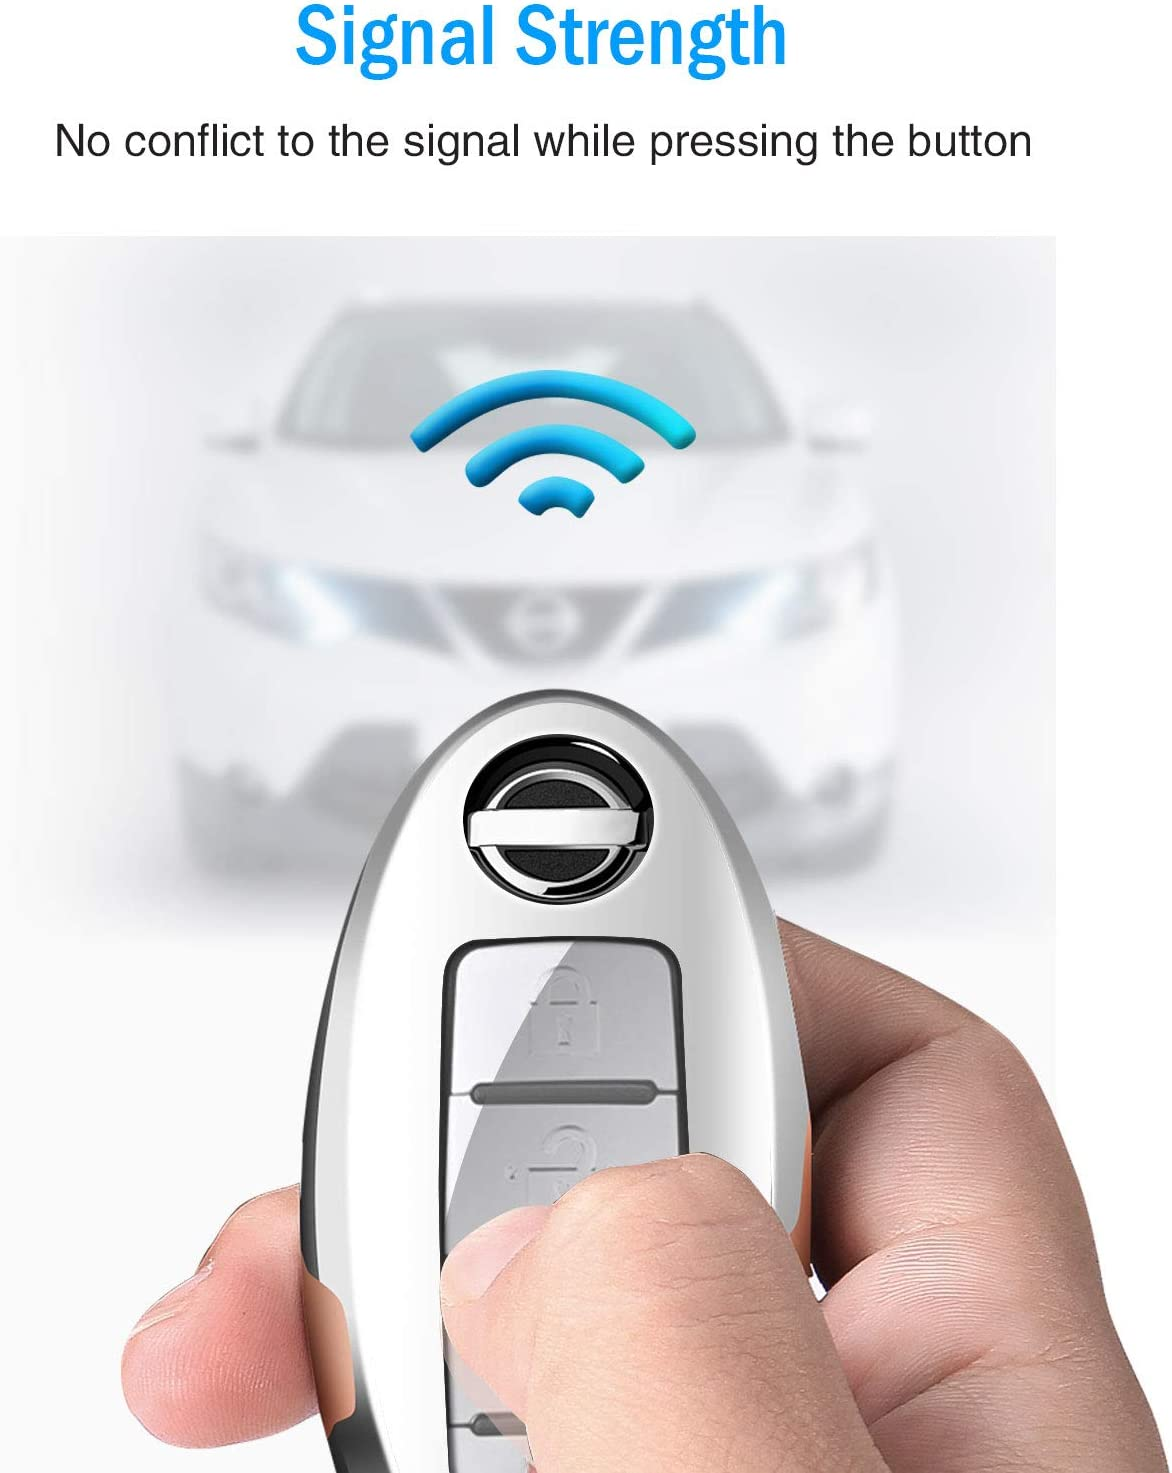 Infiniti 3 4 5-Button COMPONALL for Nissan Key Fob Cover Premium Soft TPU Full Cover Protection Smart Remote Keyless Key Fob Case,Rose Gold for Nissan Altima Maxima Rogue Armada Pathfinder